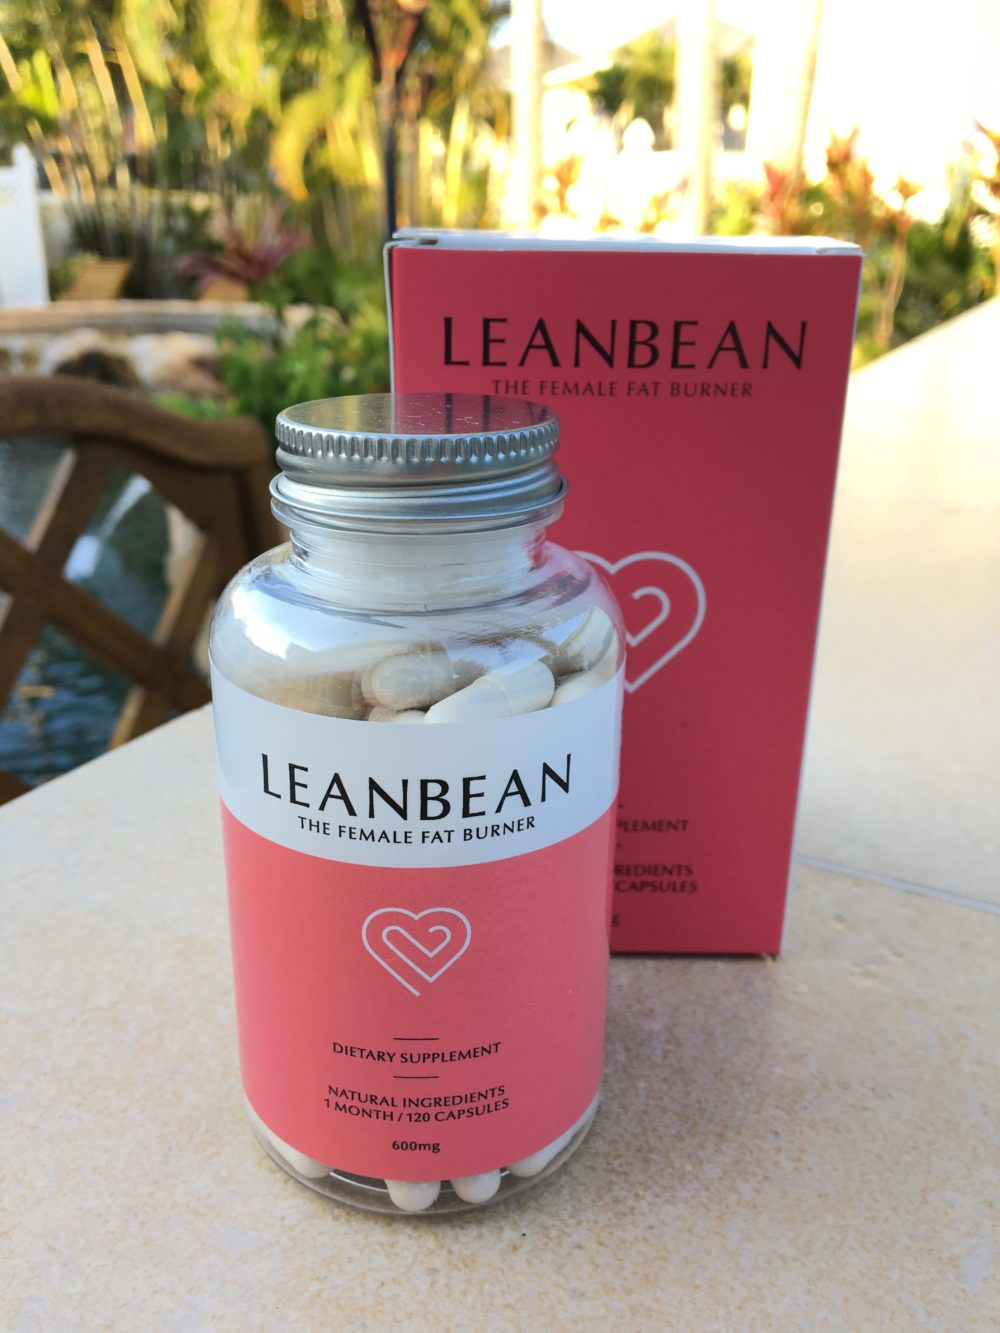 Leanbean results